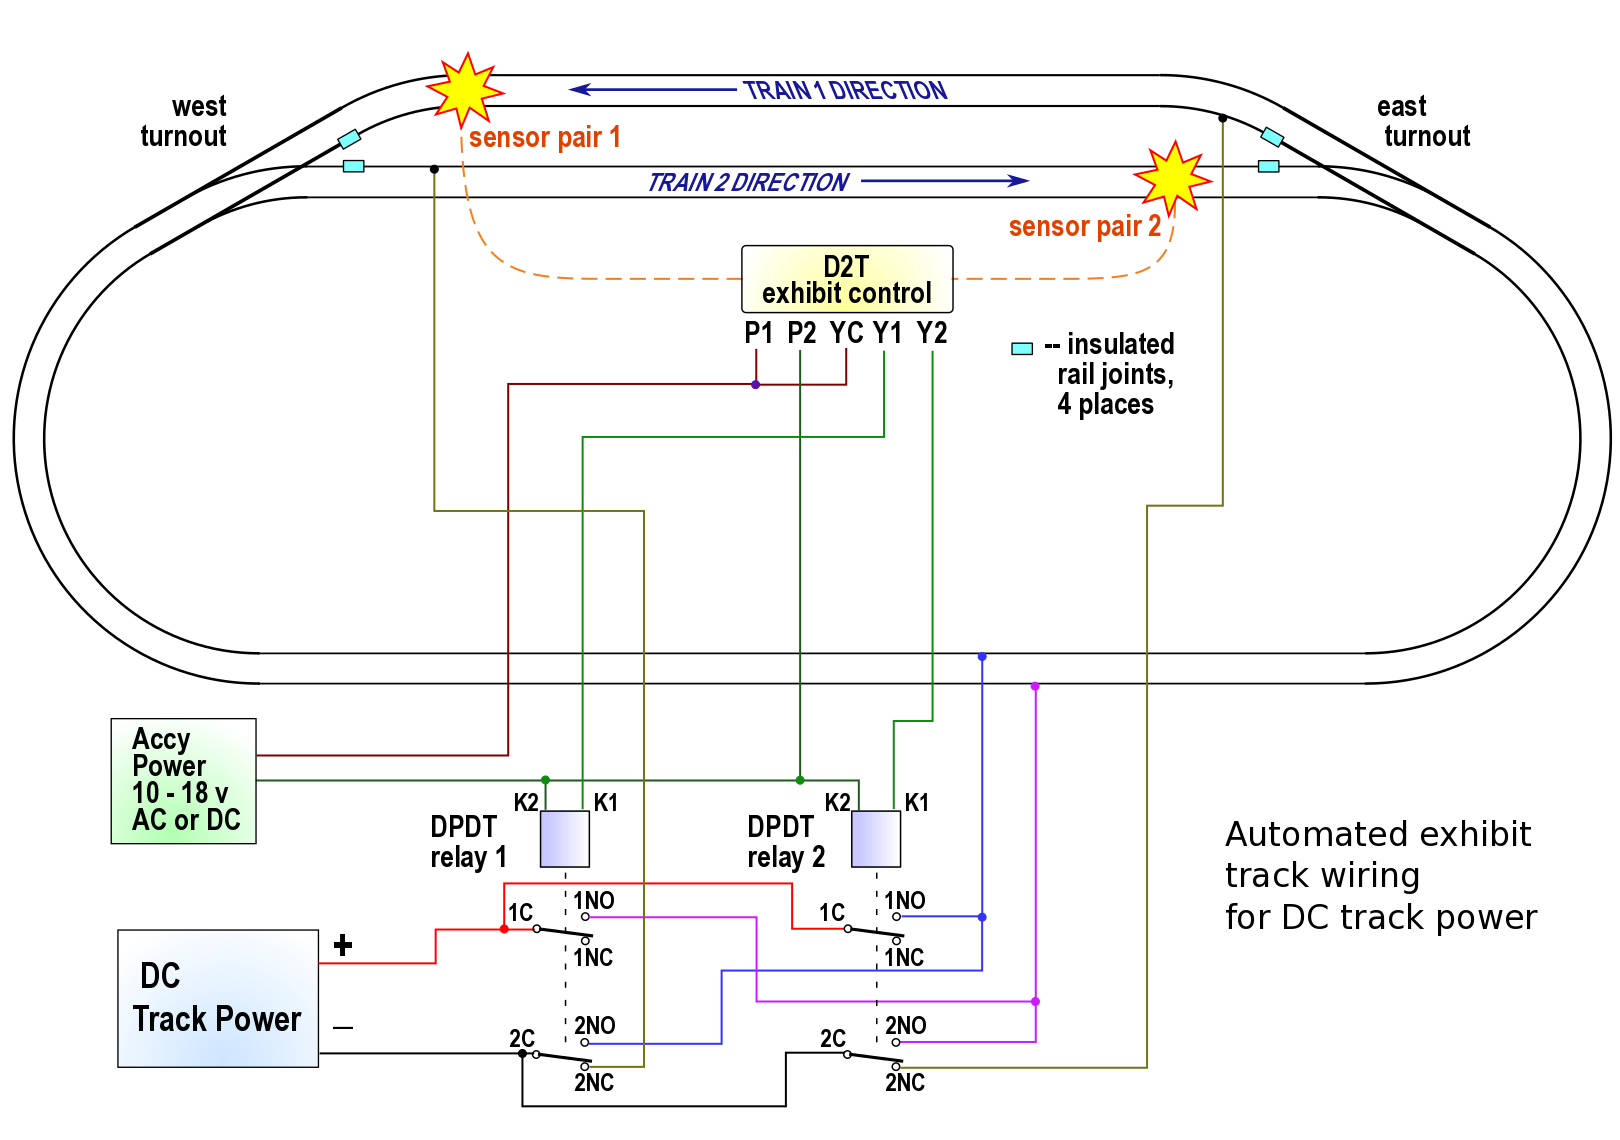 small resolution of loop wiring diagram for dc model railroad model trains train model model railway dc wiring diagrams